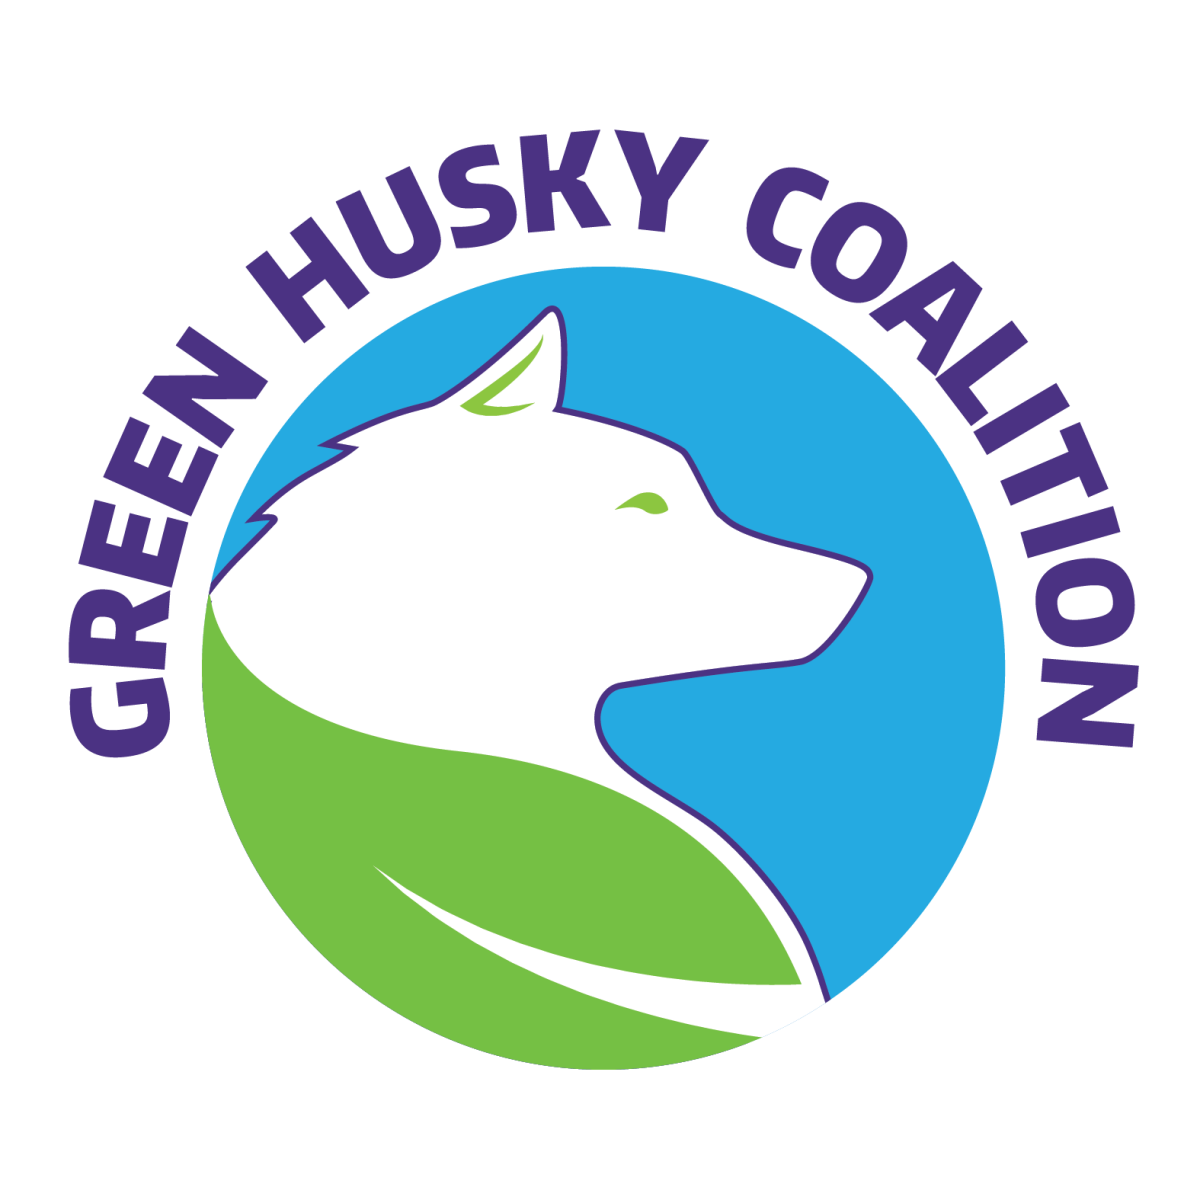 Green Husky Coalition Meeting